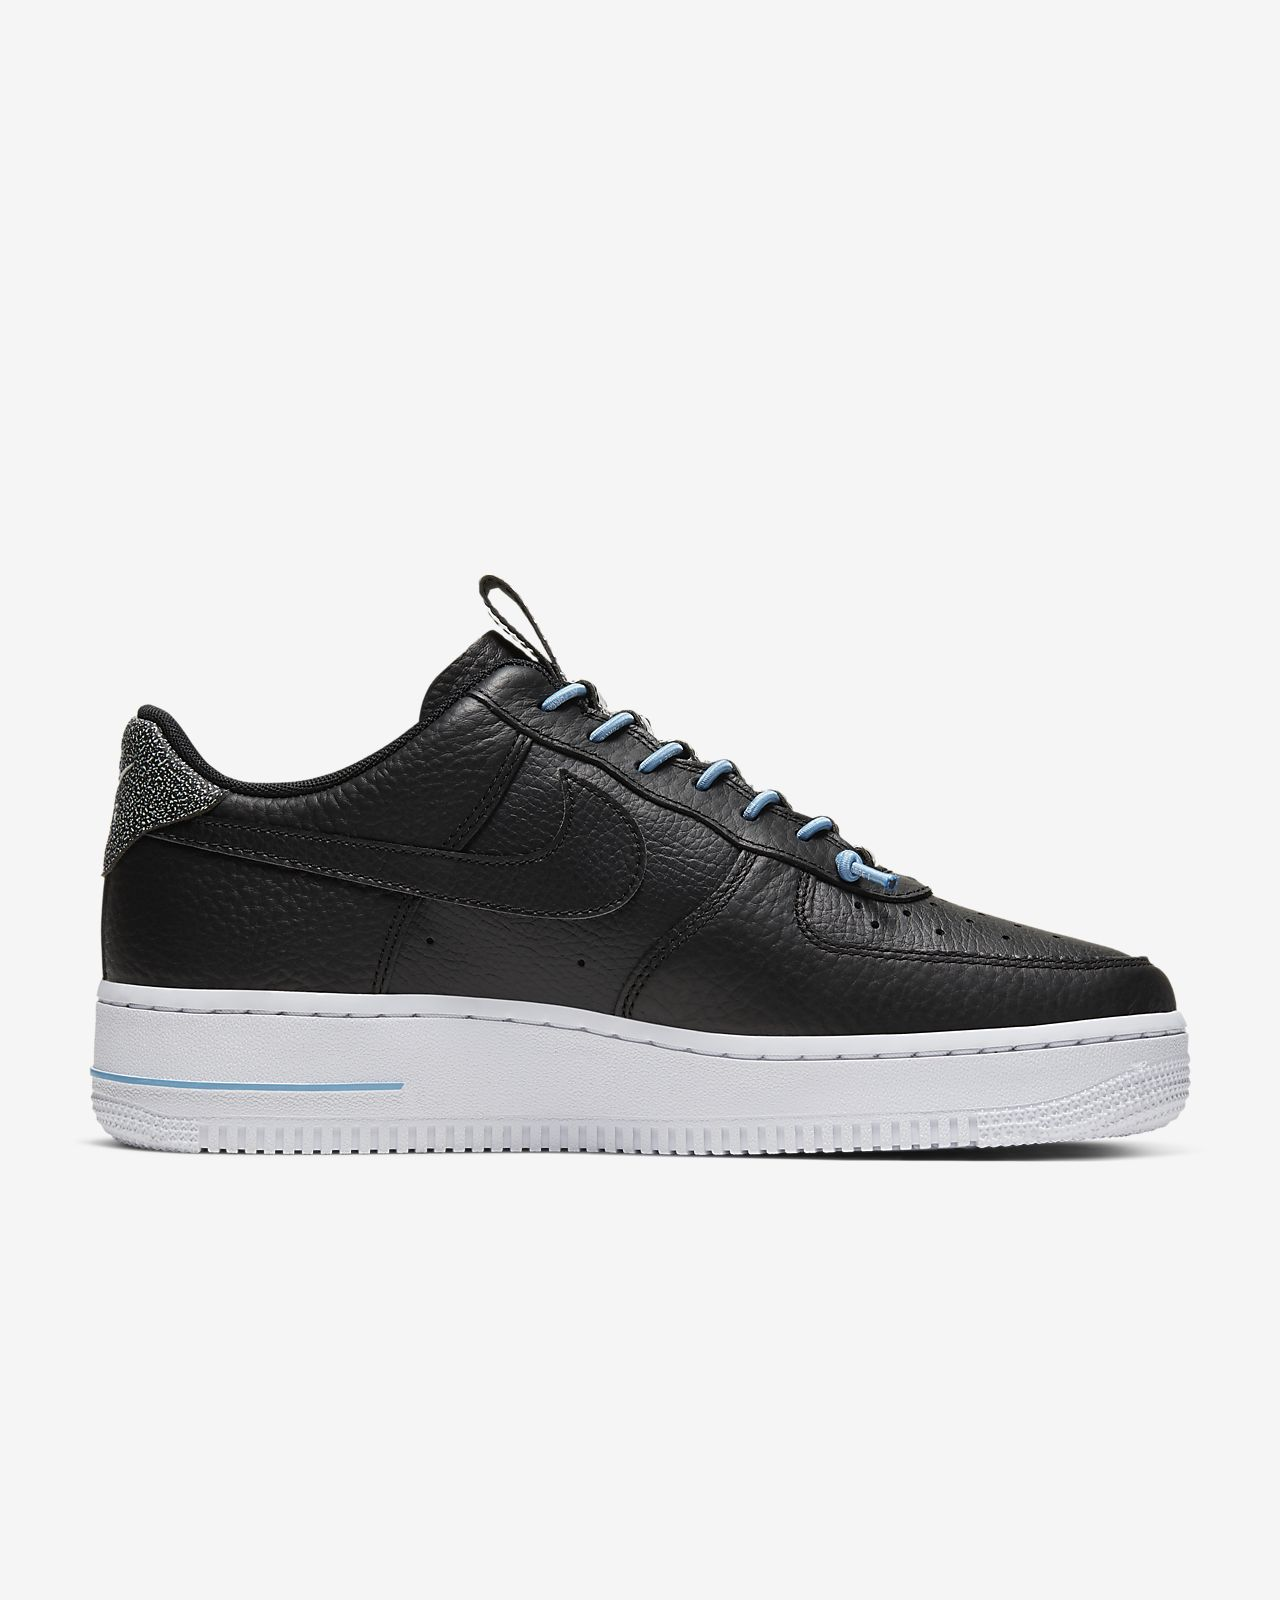 Lux Chaussure 1 Air pour Nike Force '07 Femme eWY29EHIbD